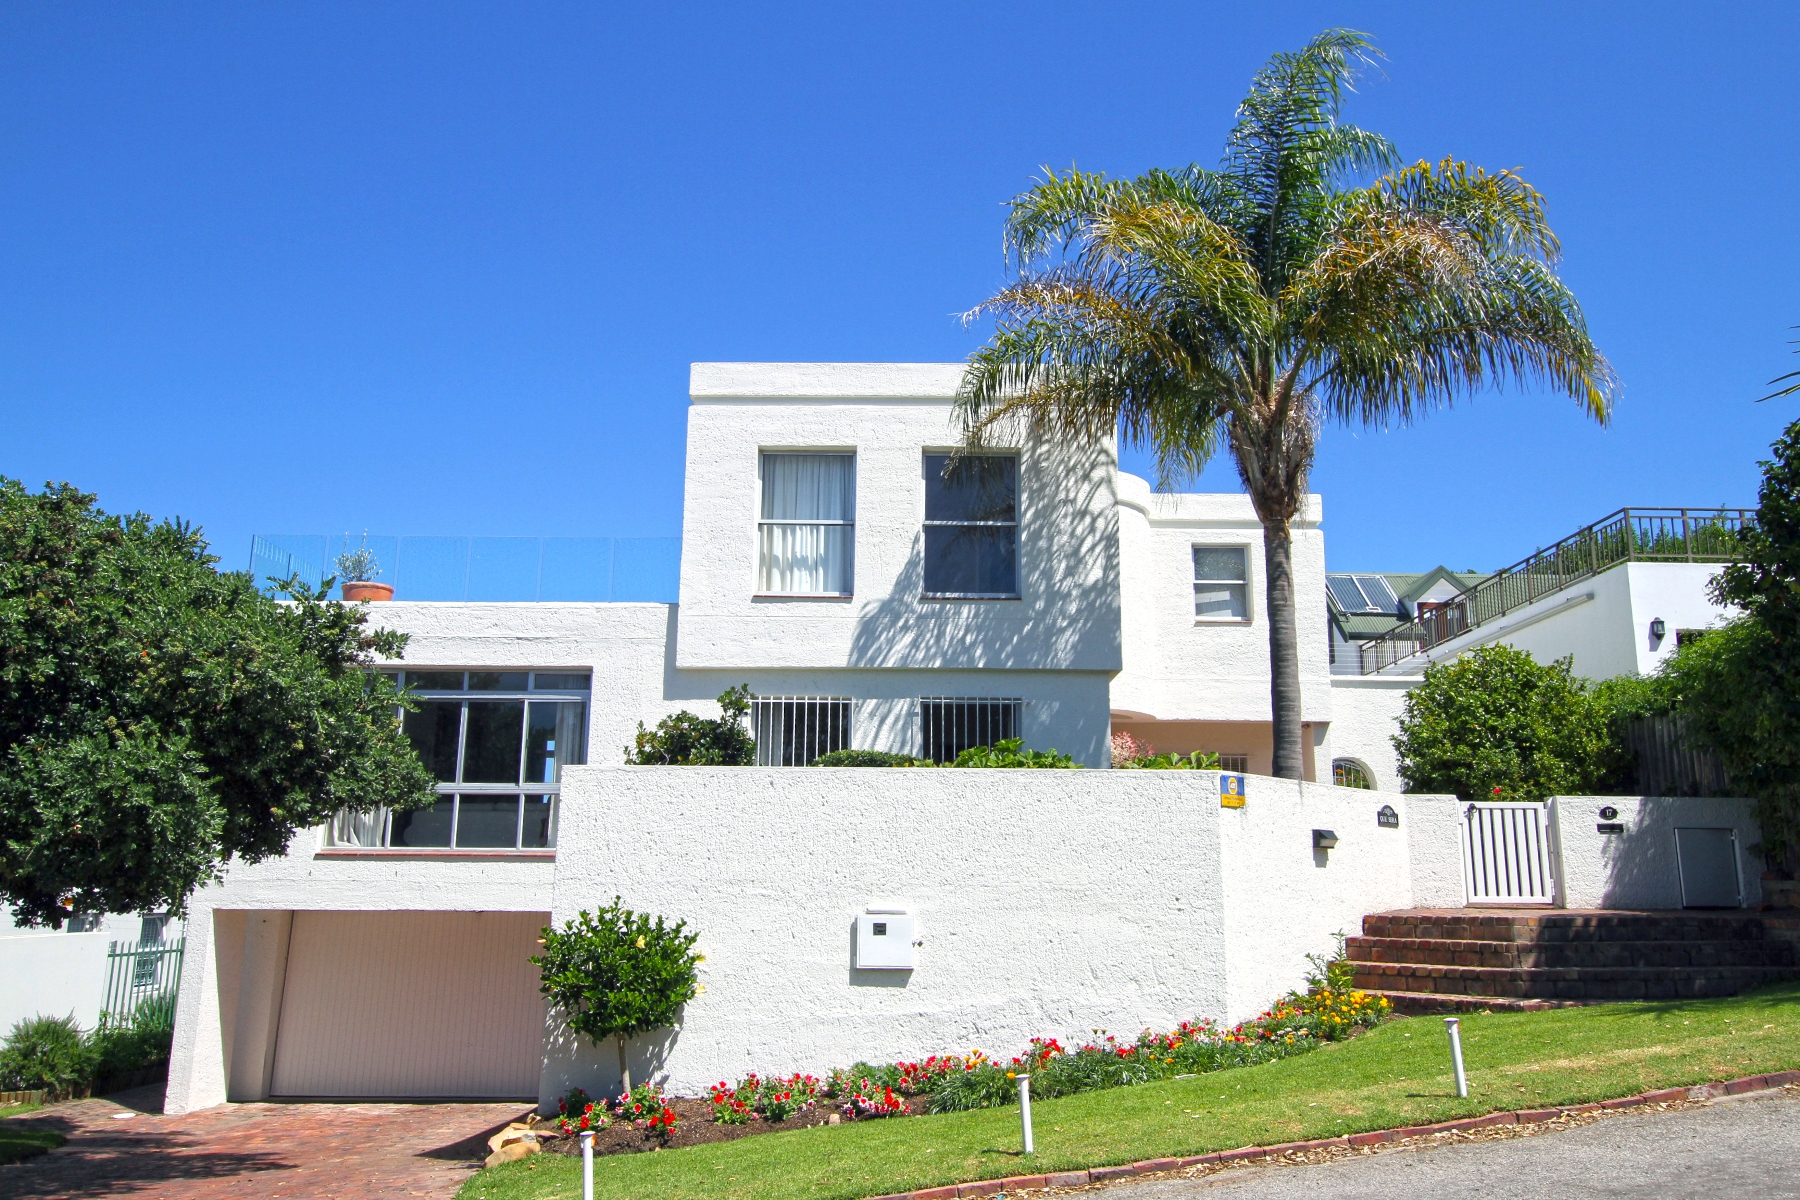 Single Family Home for Sale at Que Sera in Old Plett! Plettenberg Bay, Western Cape, 6600 South Africa